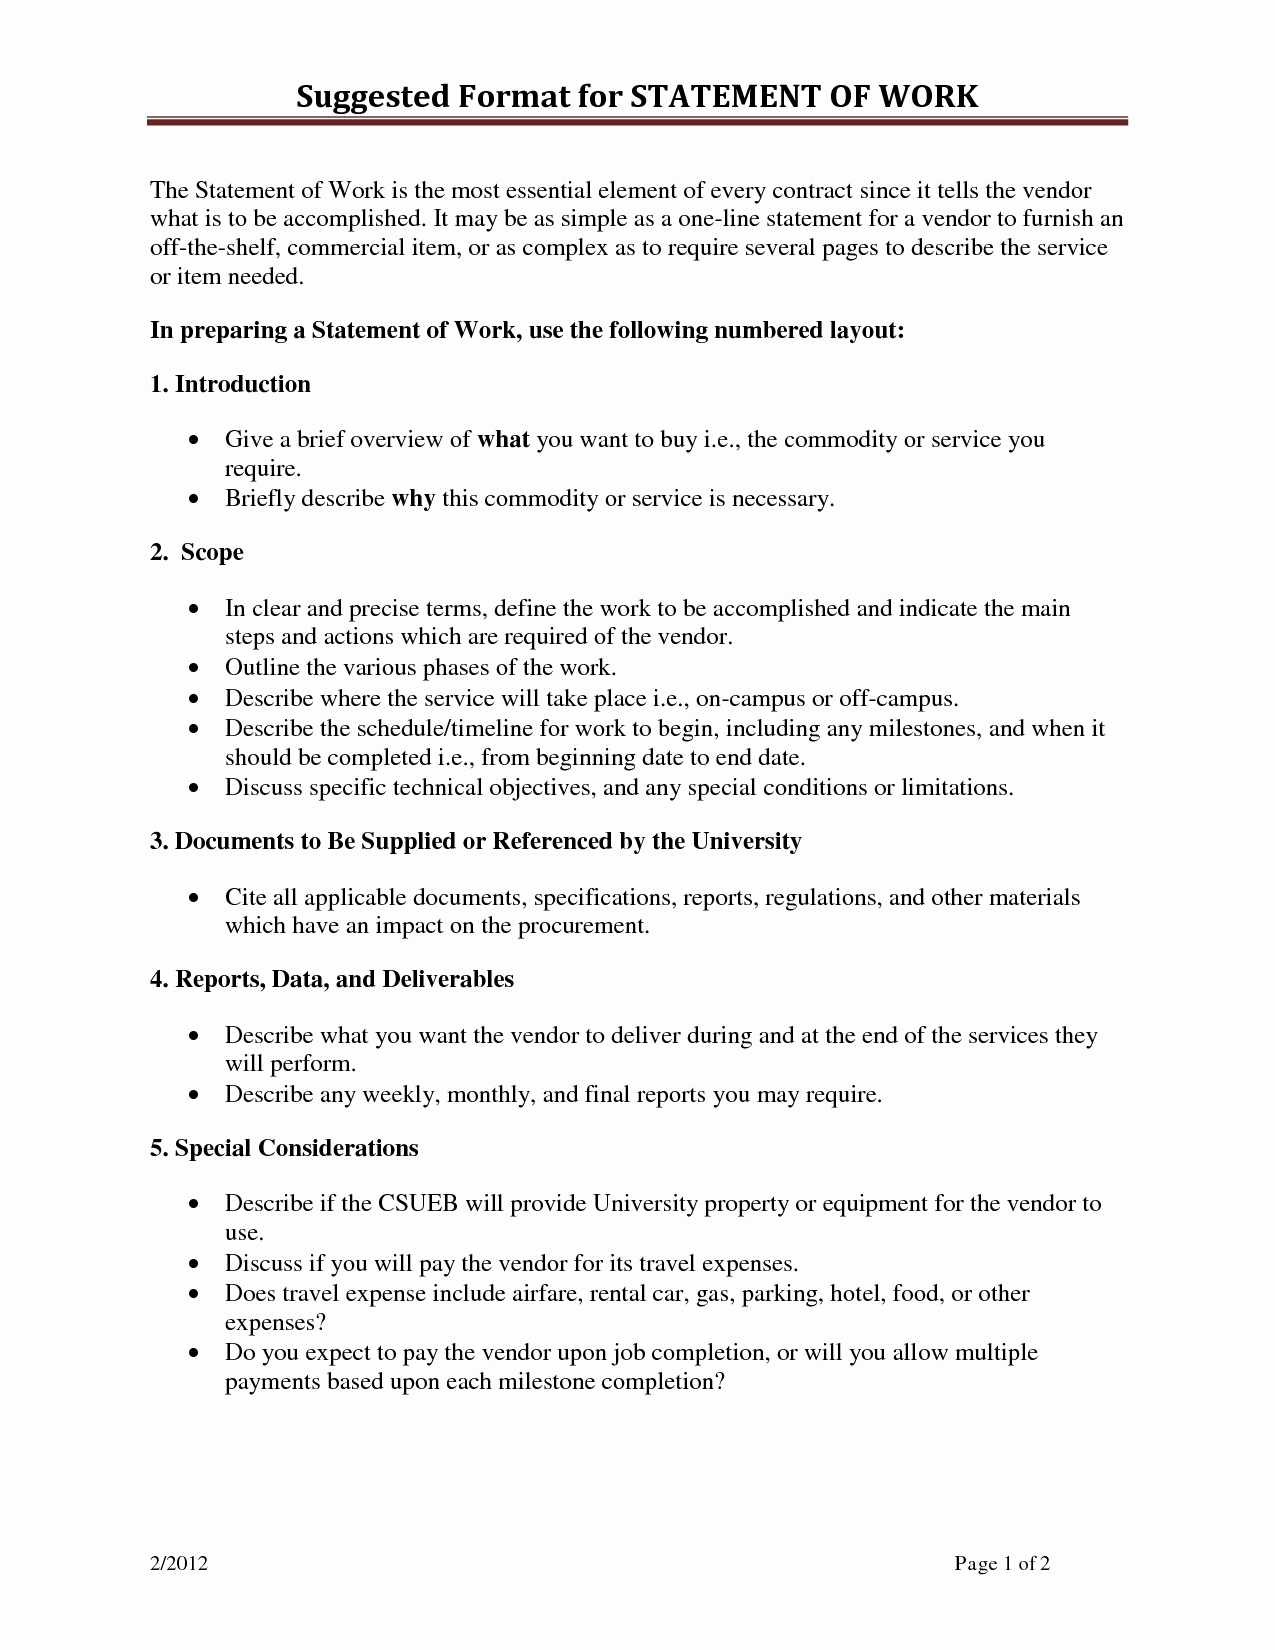 Sow Template Doc Inspirational Statement Work Template